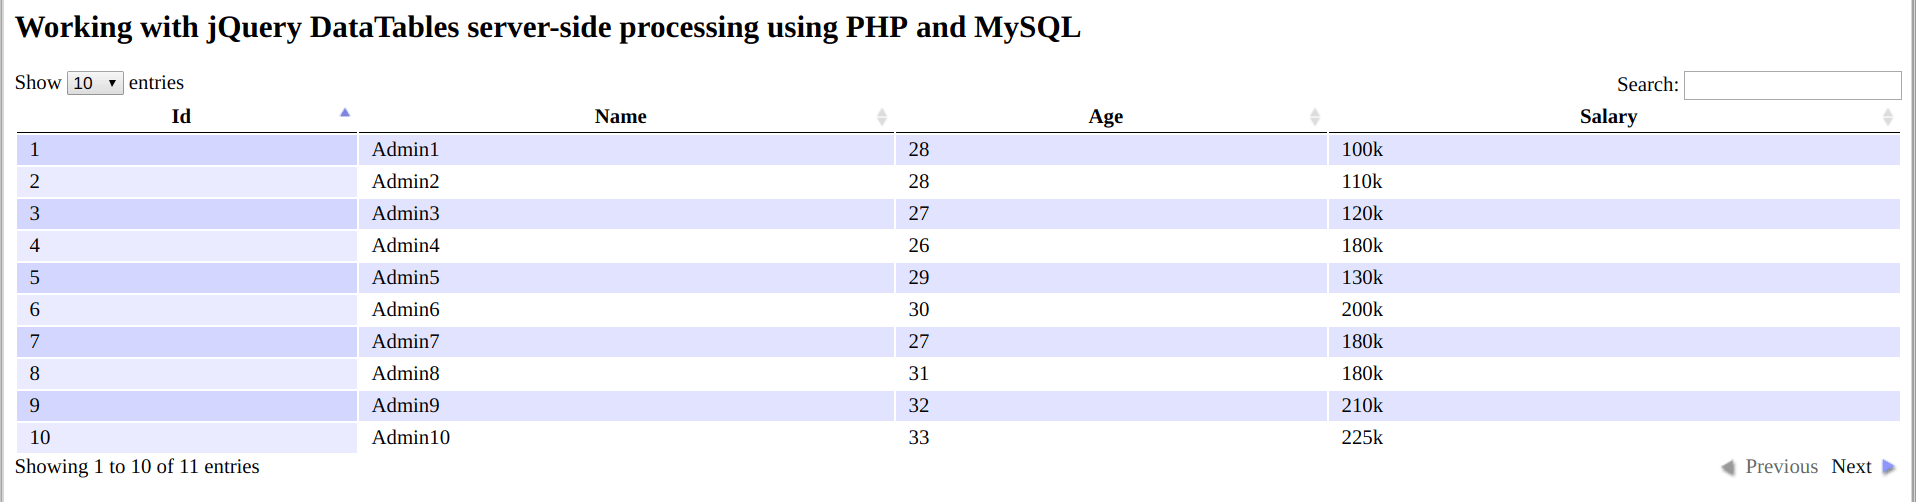 Working with jQuery DataTables server-side processing using PHP and MySQL